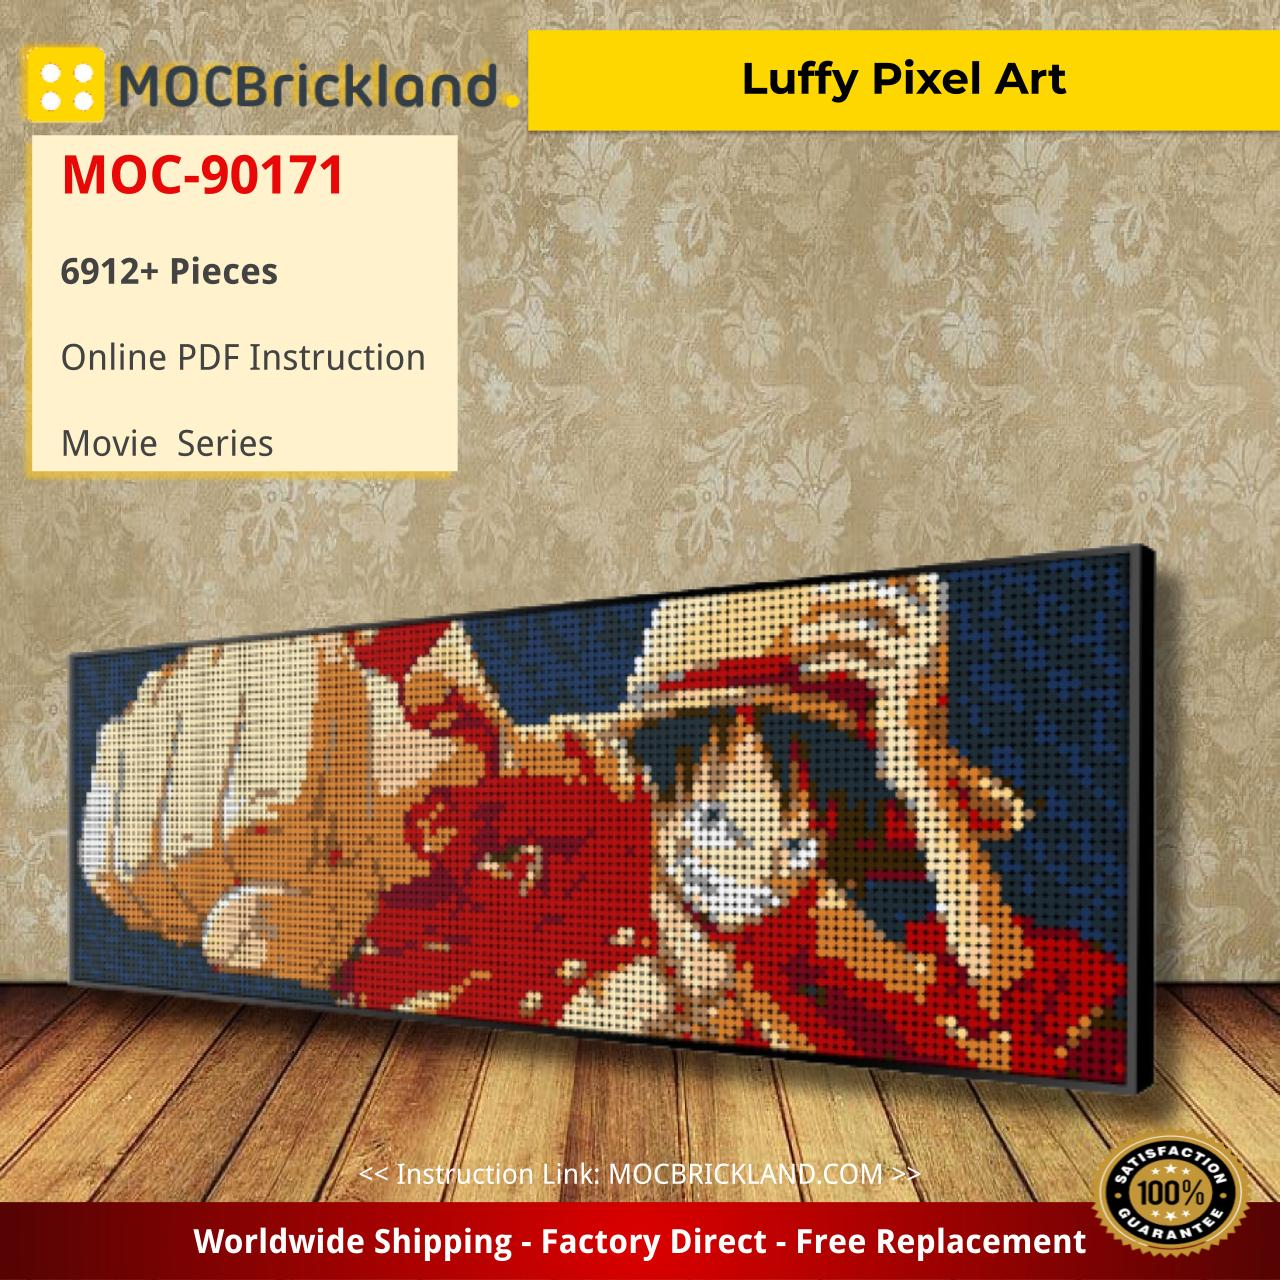 Luffy Pixel Art Movie MOC-90171 WITH 6912 PIECES